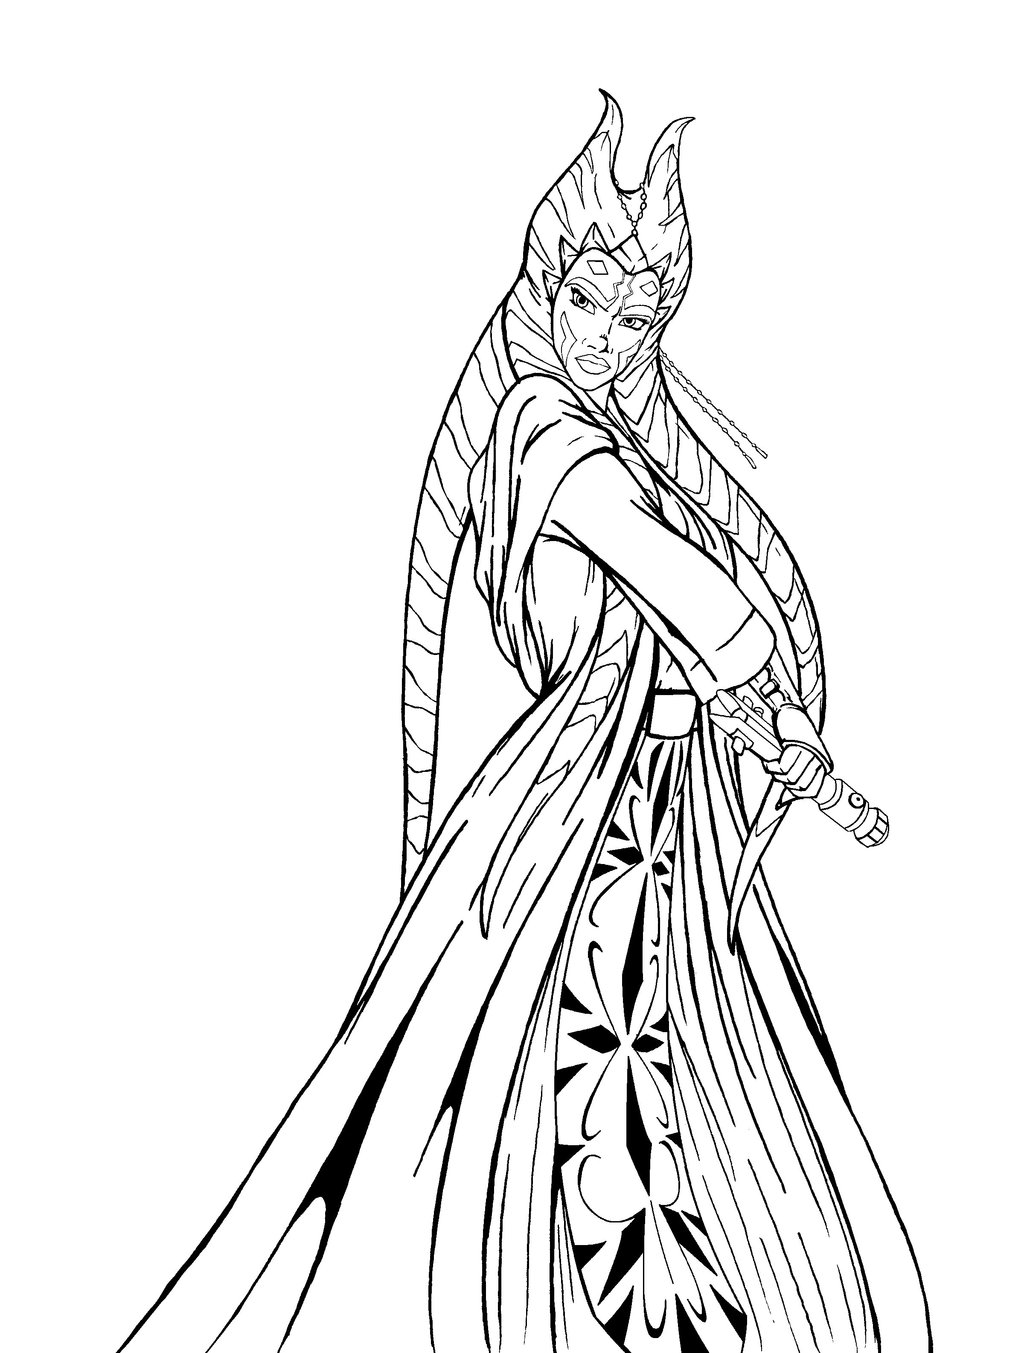 ahsoka coloring pages download and print for free